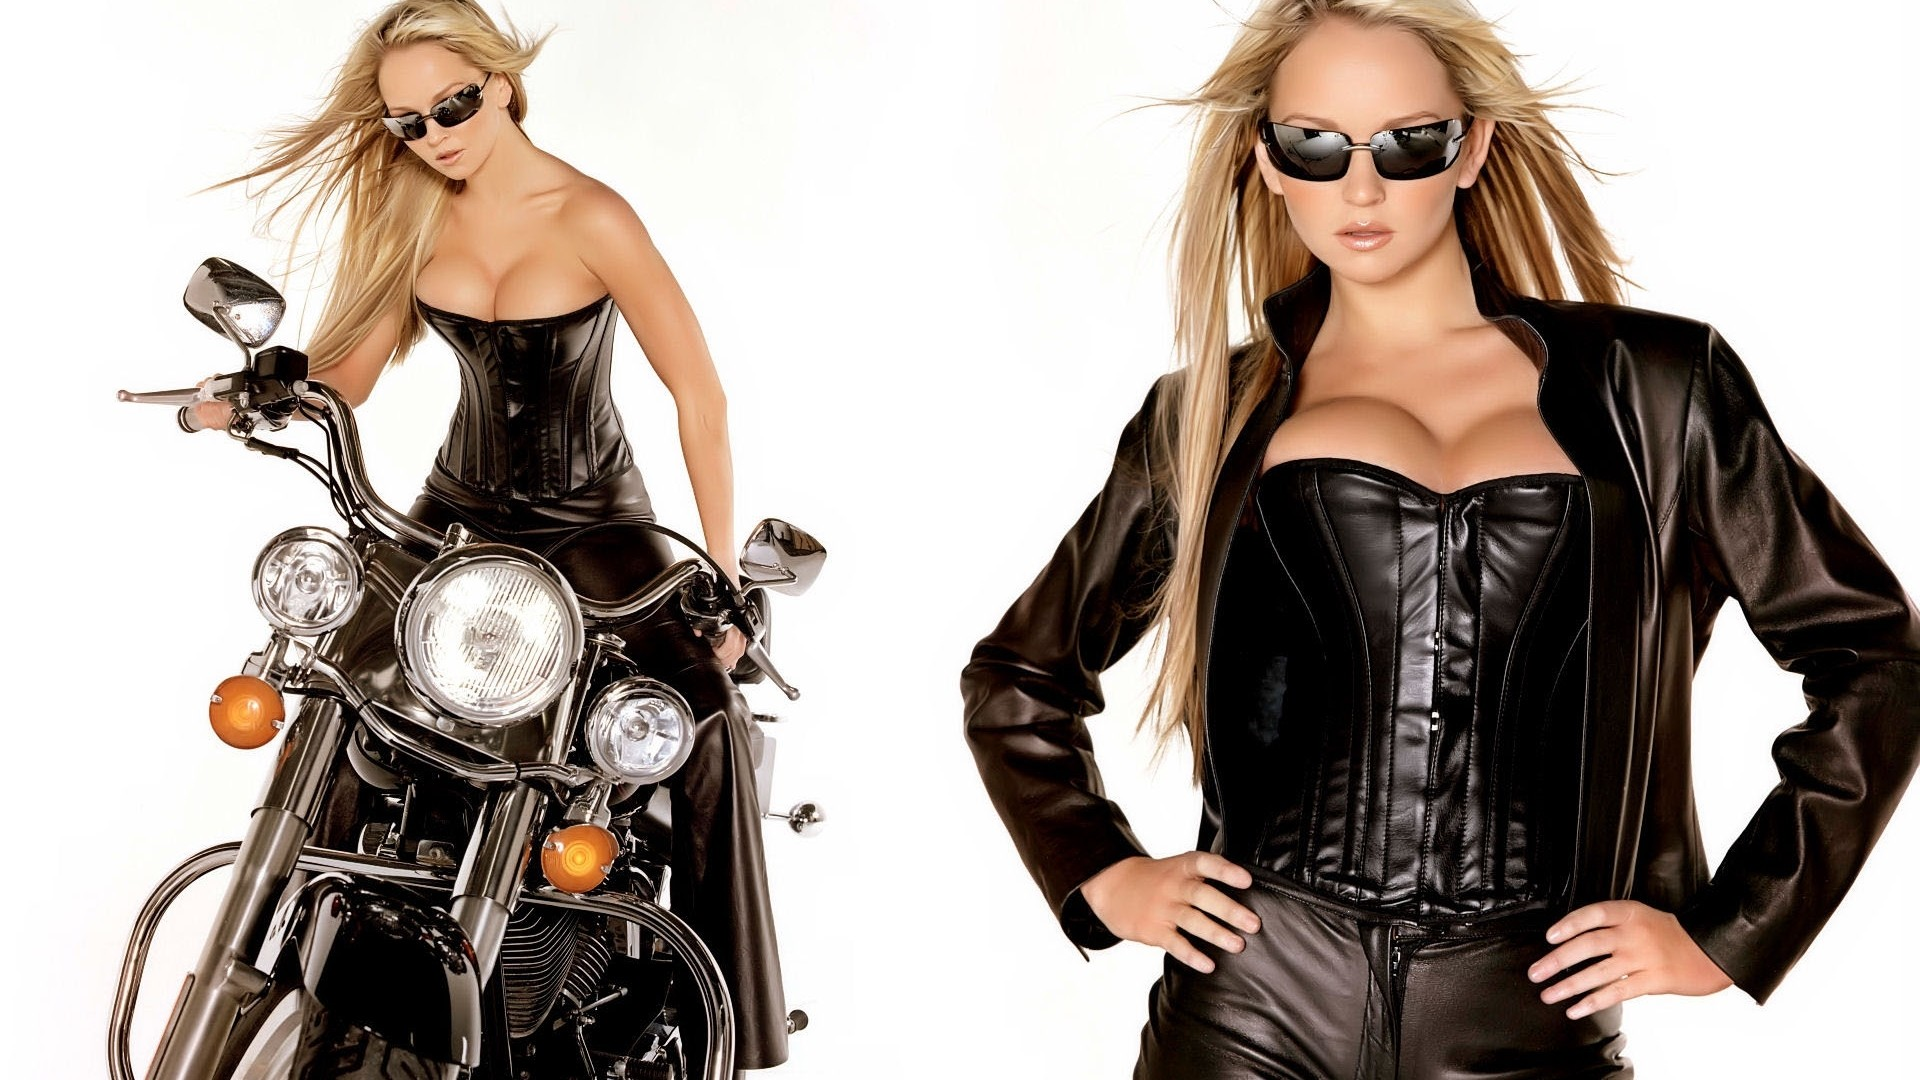 Wallpaper Blonde, Glasses, Jacket, Motorcycle, Leather HD, Picture, Image